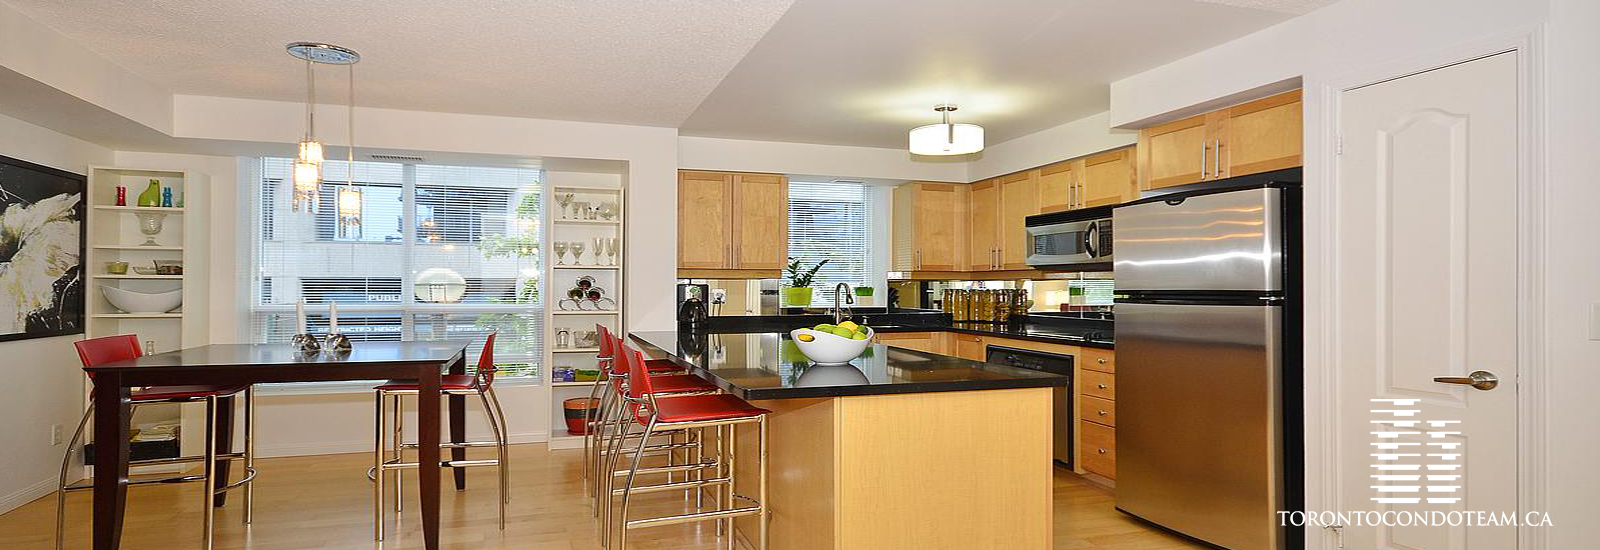 18 Stafford Street Condos For Sale